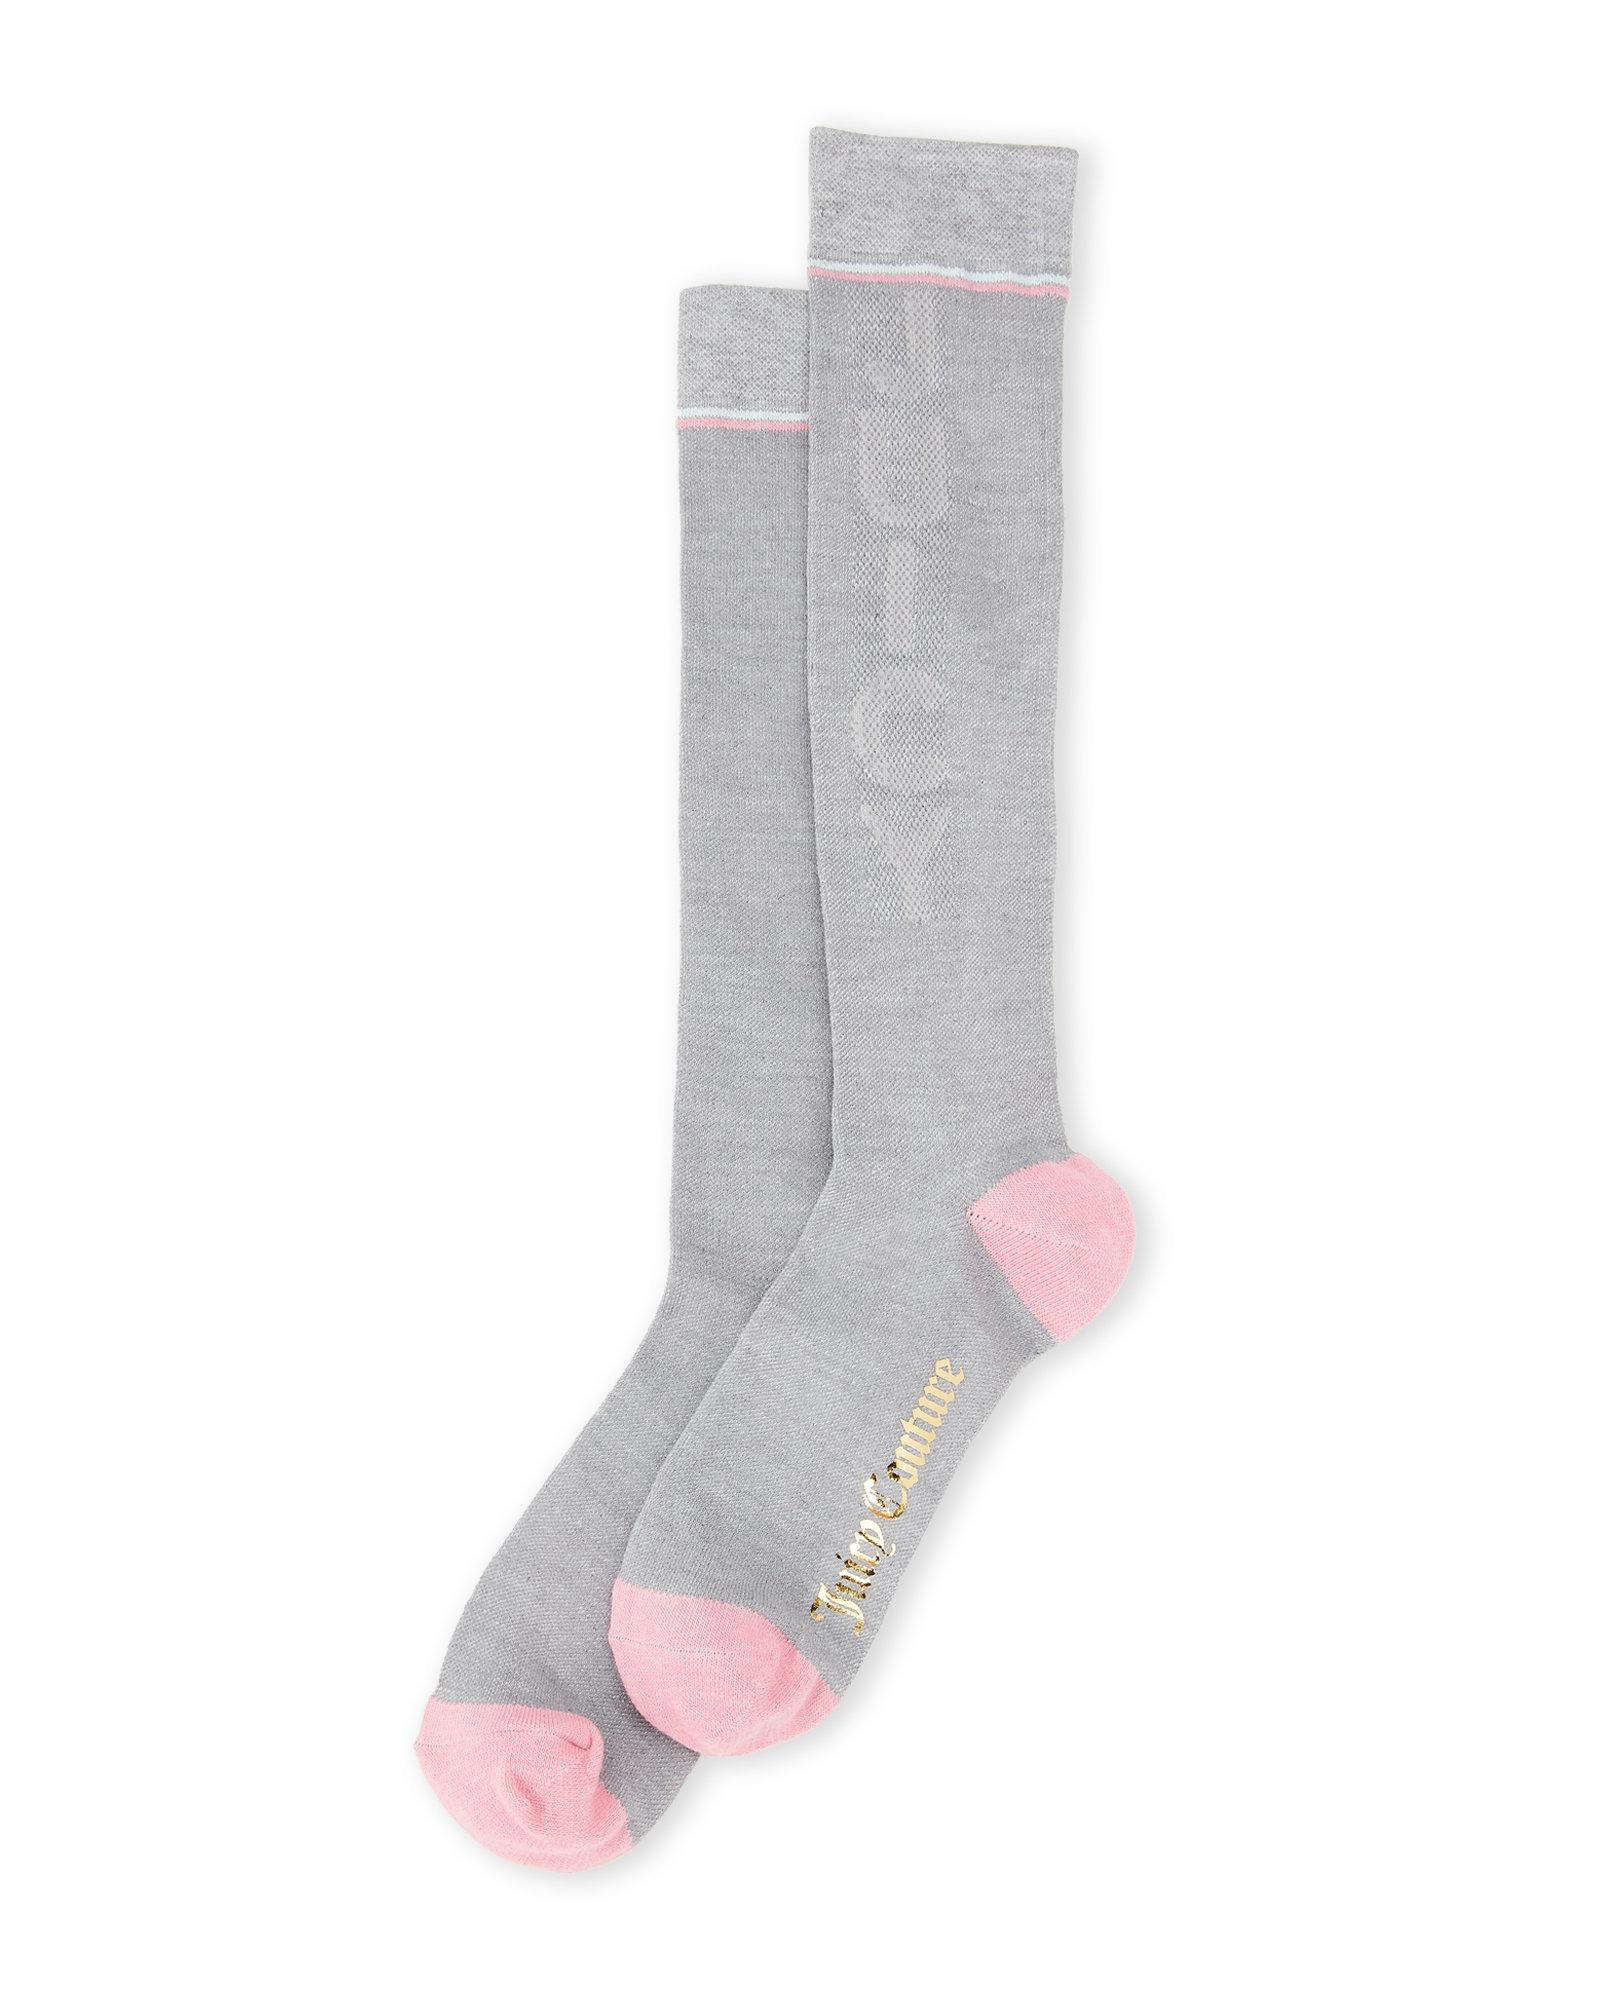 a66ee022d3 Lyst - Juicy Couture Mesh Logo Knee-high Socks in Gray for Men